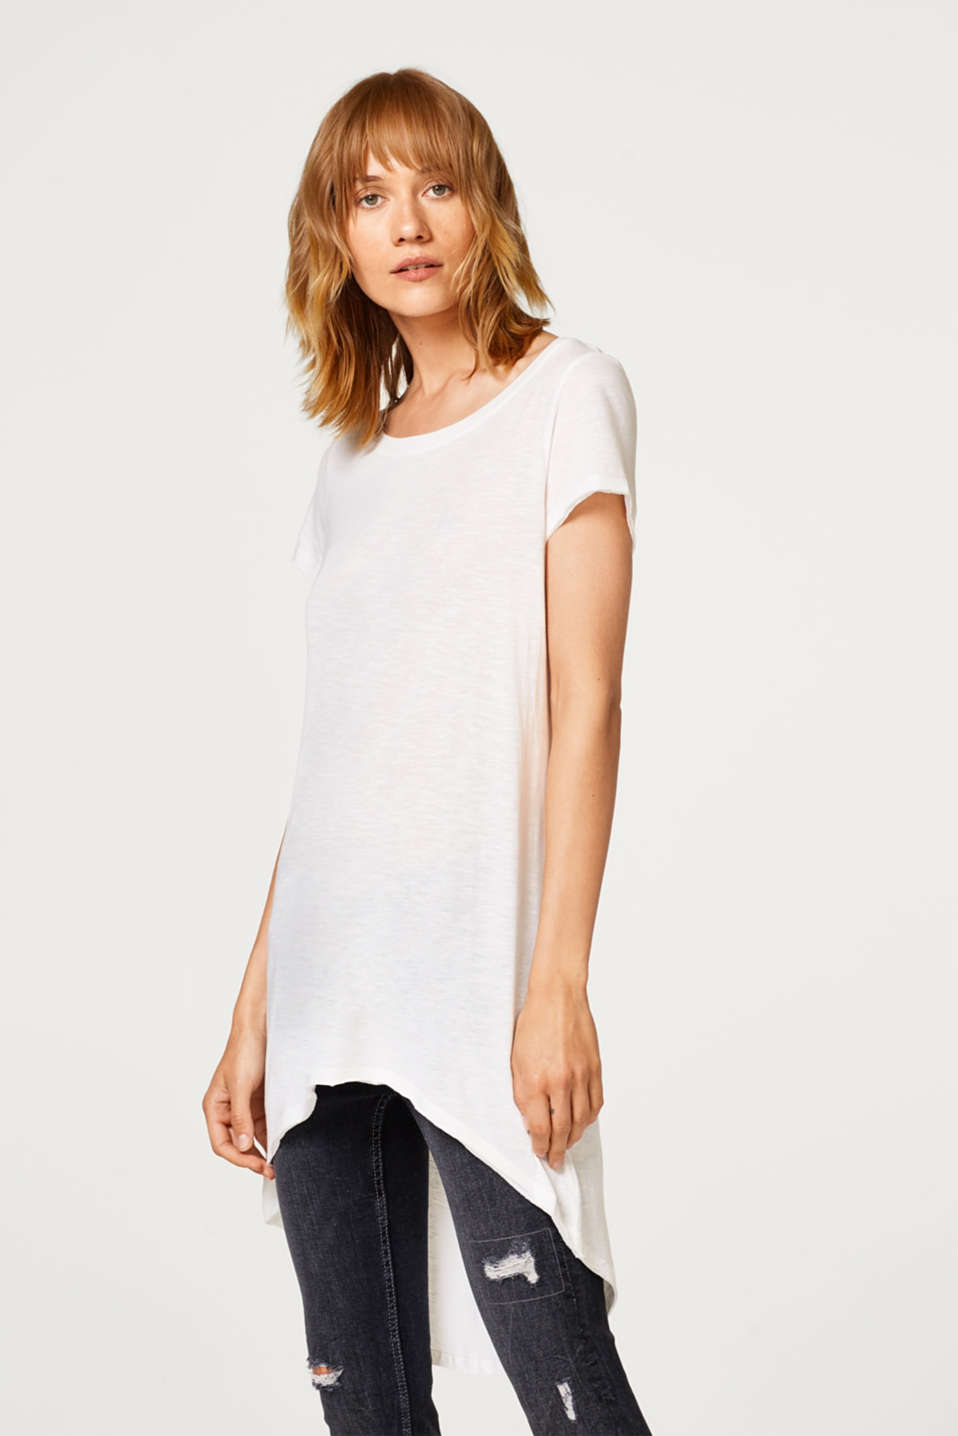 Esprit - Slub jersey top with a high-low hem